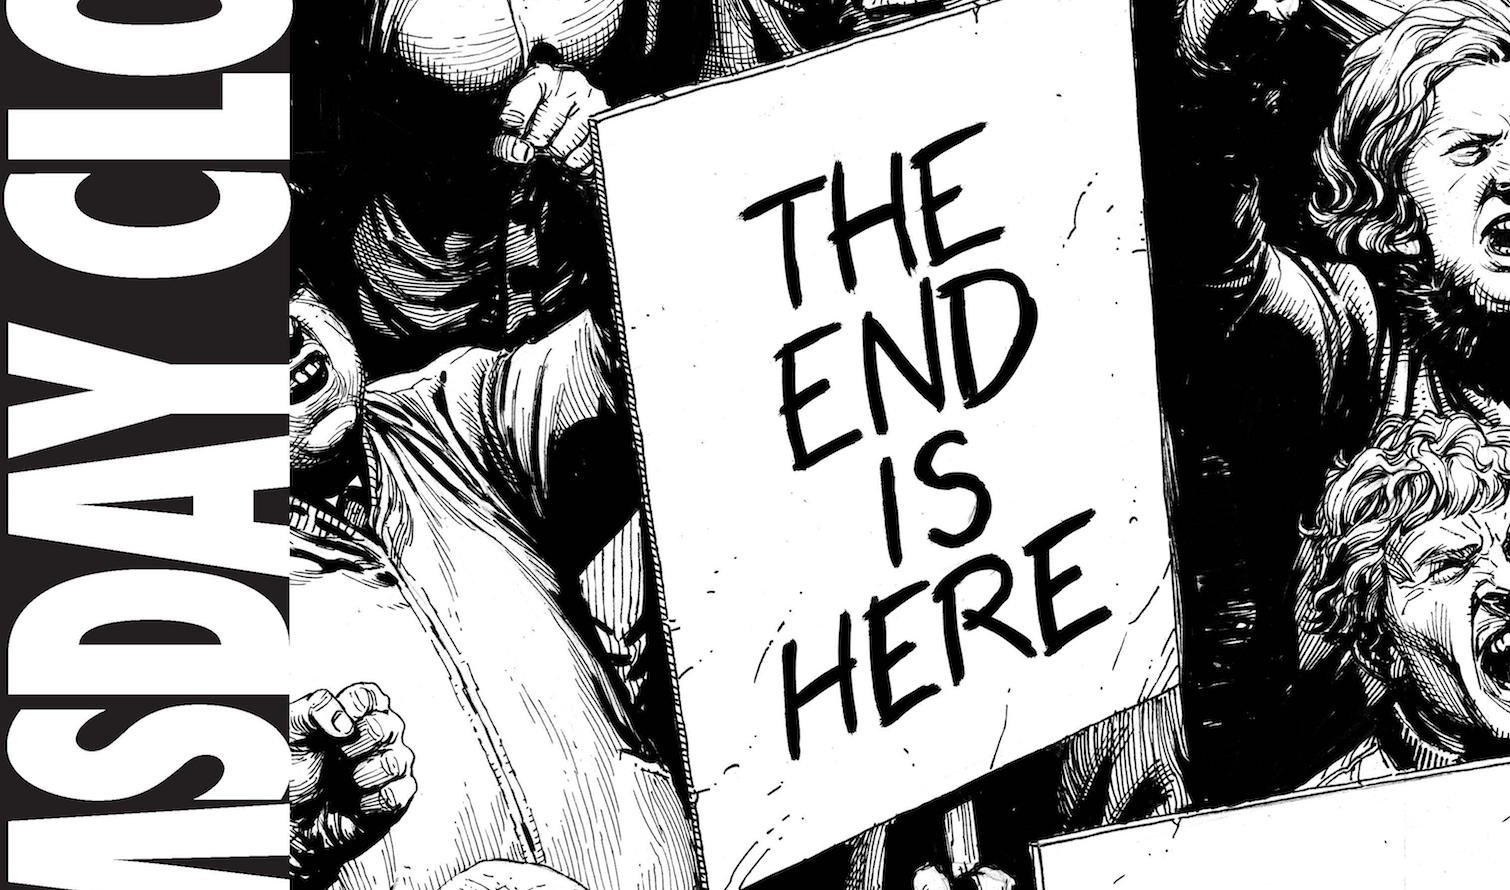 NYCC 2017: First look at DC Comics' Doomsday Clock event